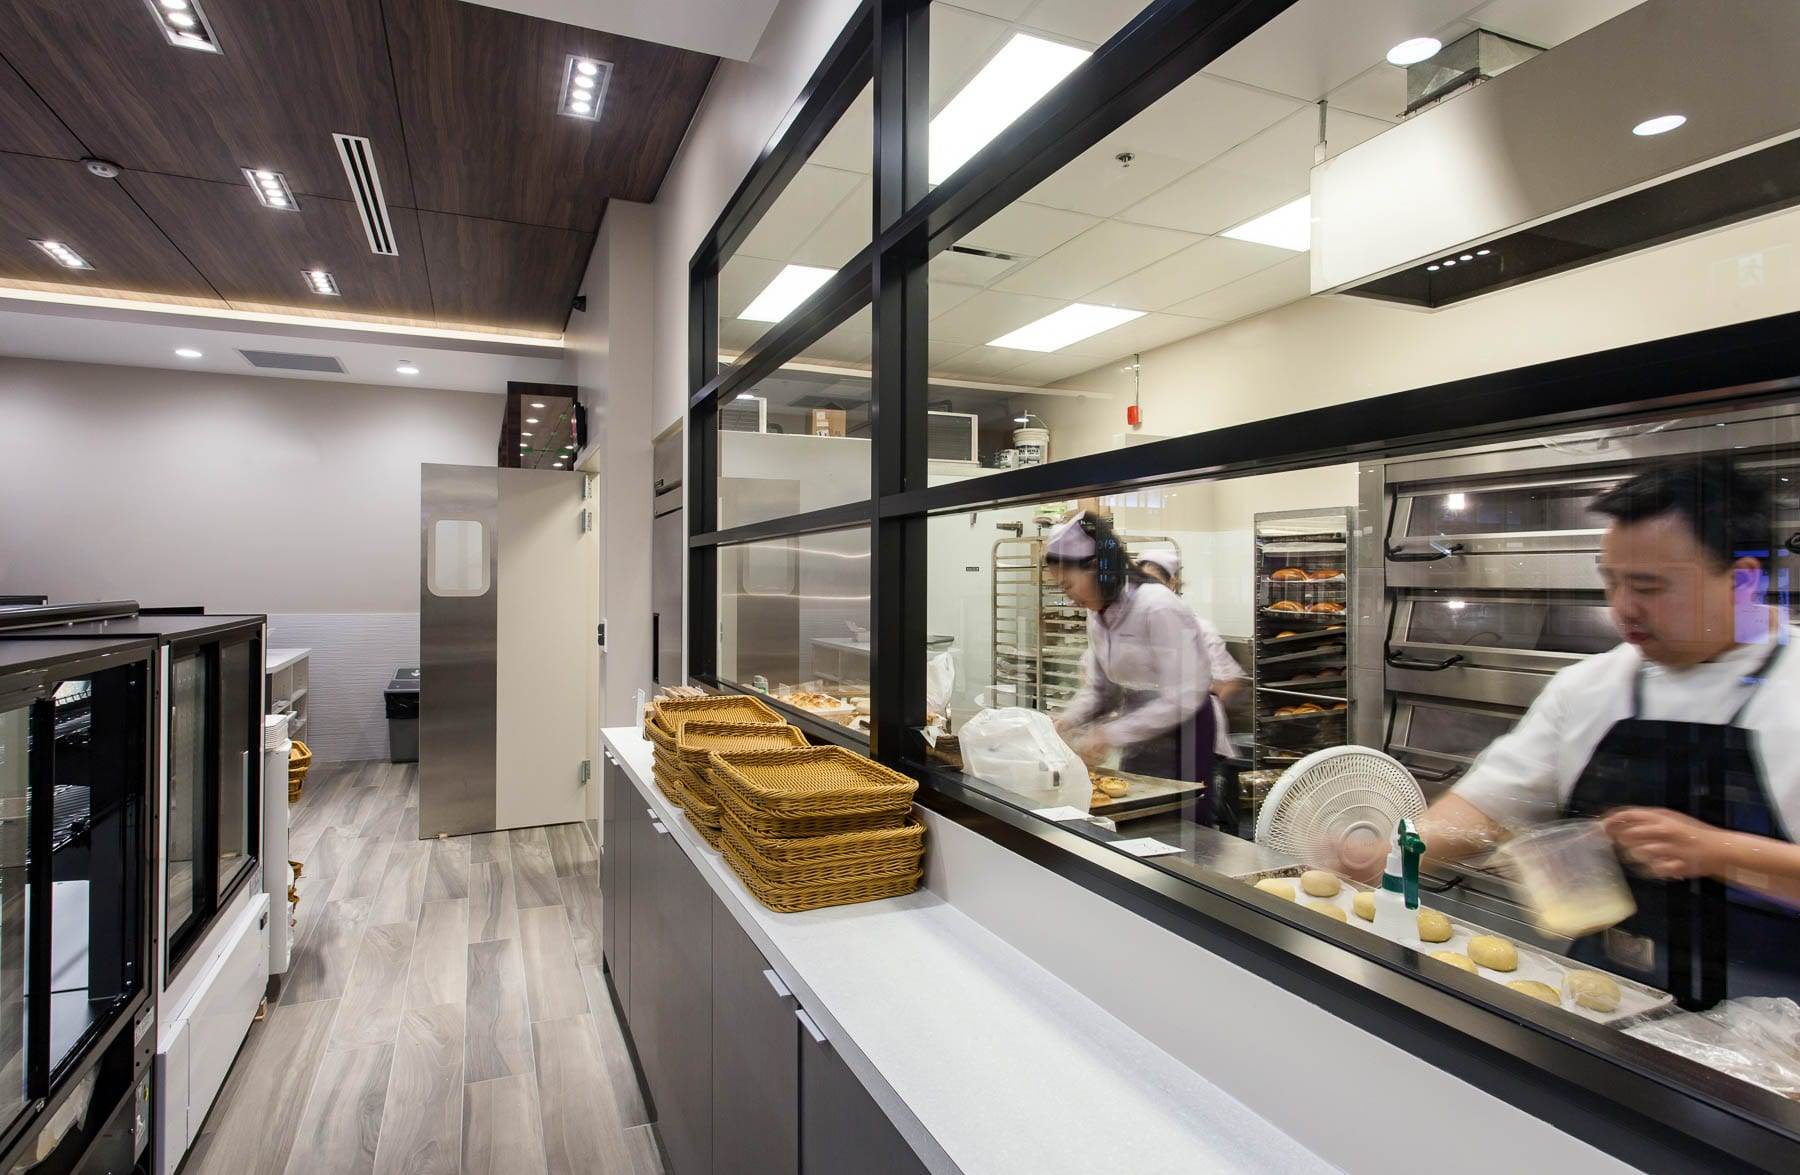 Staff baking in the kitchen at Saint Germain Bakery in Guildford Town Centre